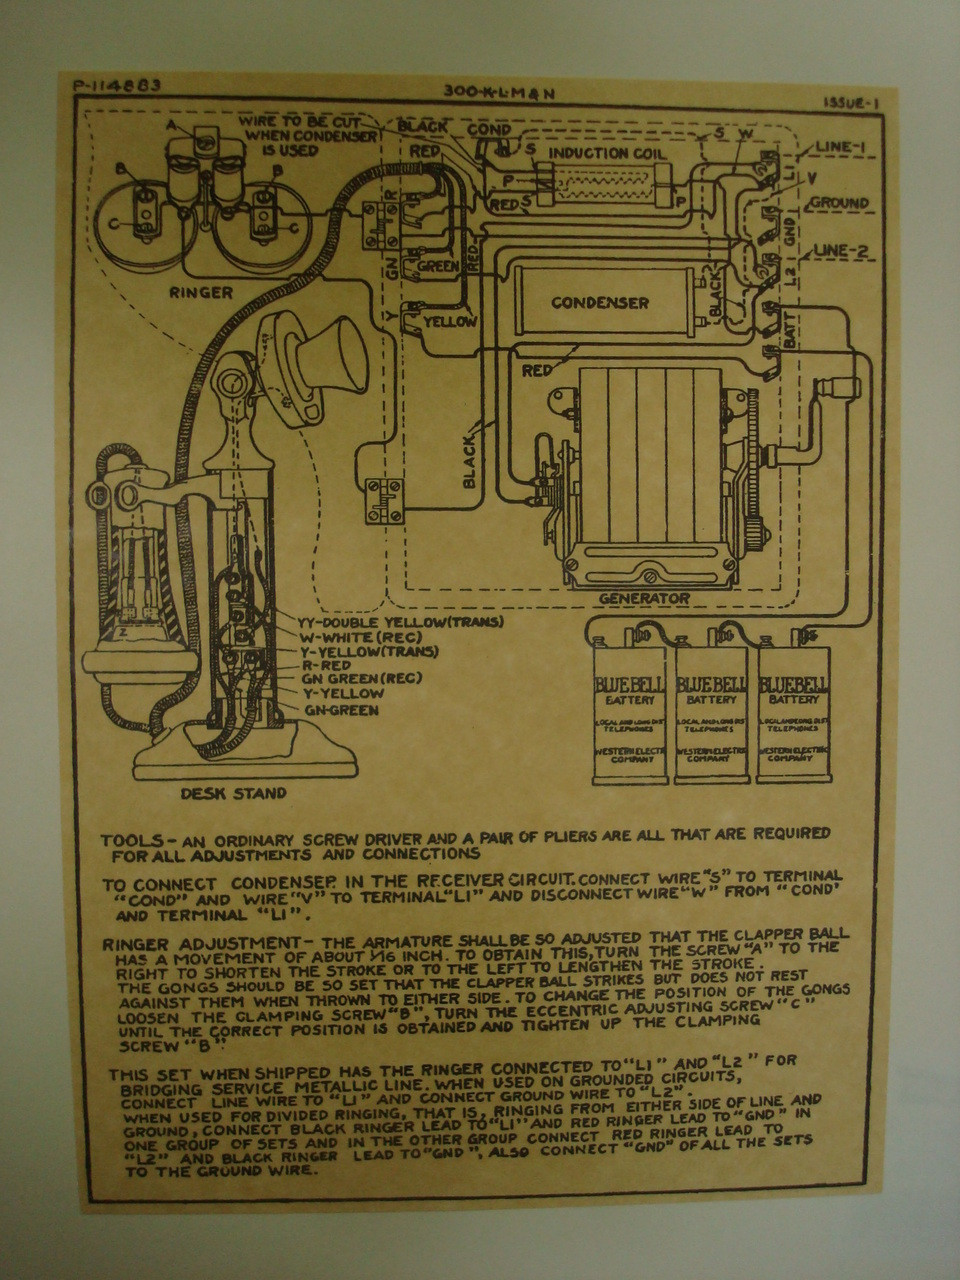 [SCHEMATICS_4JK]  Wooden Magneto box and candlestick Wiring Diagram glue on - Old Phone Shop  Store | Vintage Telephone Wiring Diagram |  | Old Phone Shop